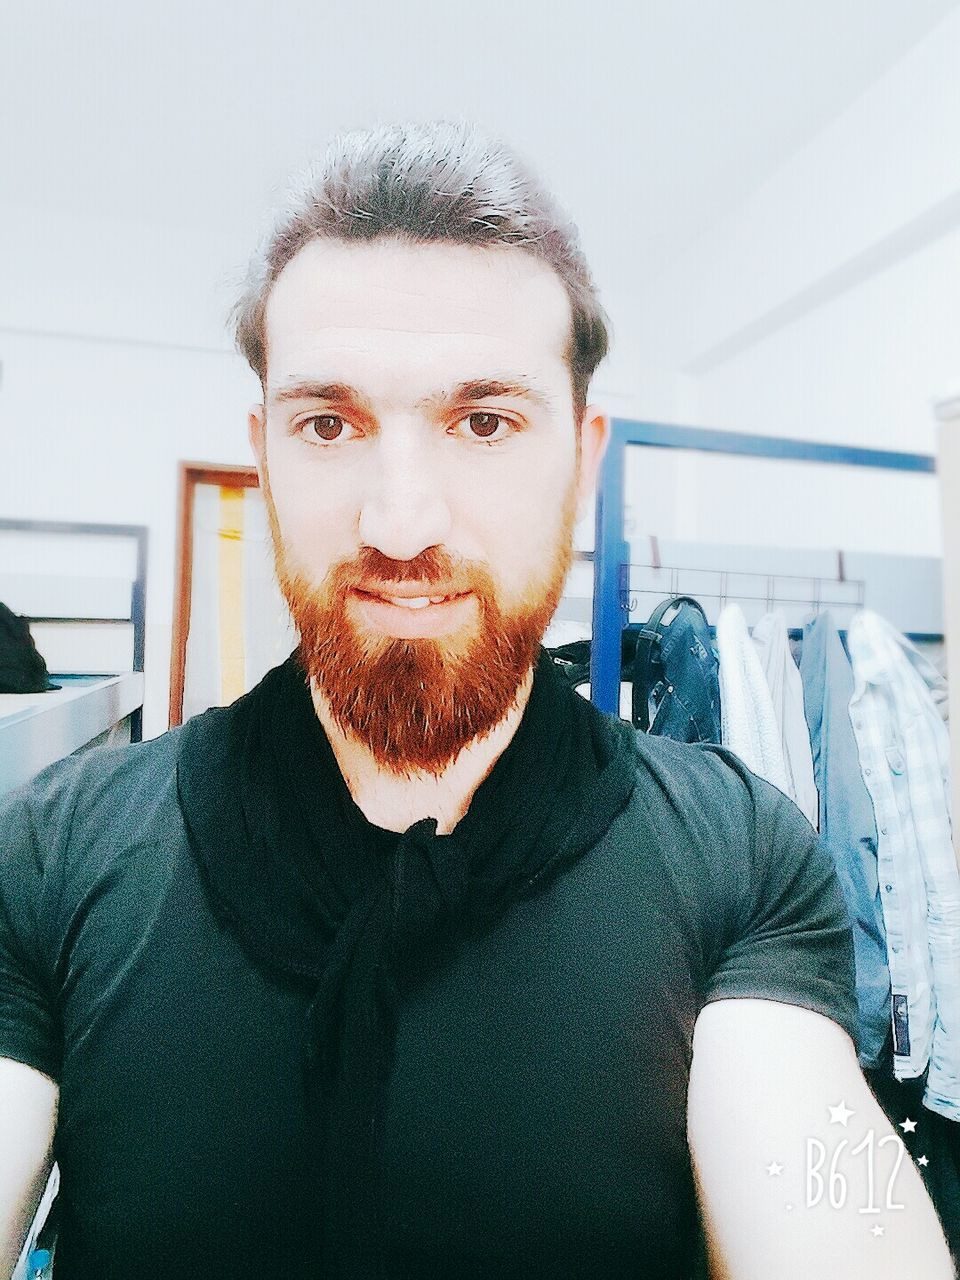 looking at camera, beard, portrait, one person, front view, real people, mid adult men, indoors, casual clothing, standing, young adult, smiling, happiness, lifestyles, day, close-up, people